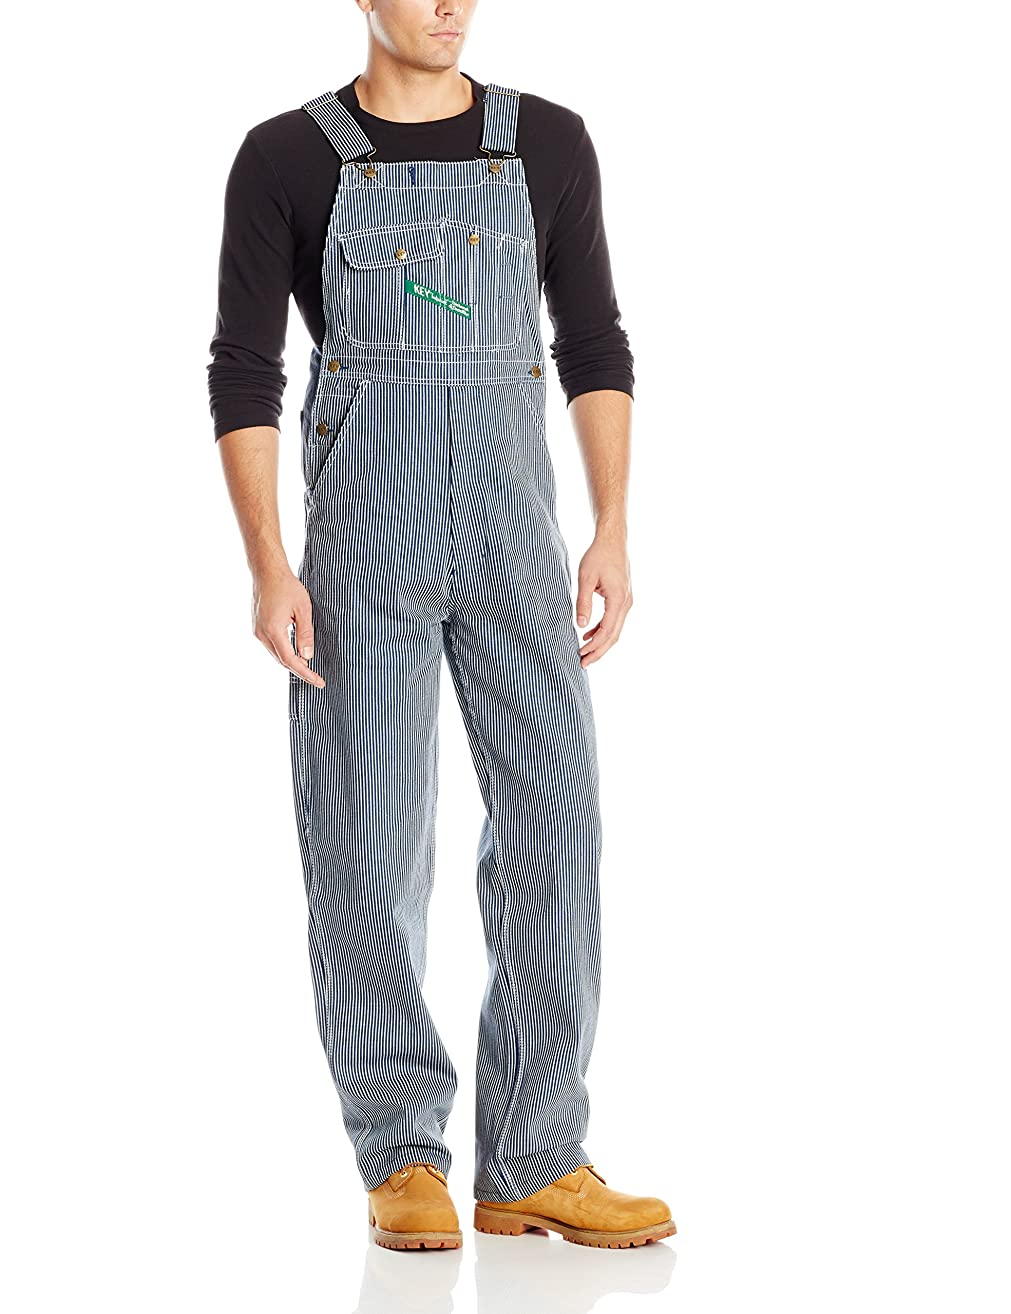 Key Apparel Men's Hickory Stipe High Back Bib Overall